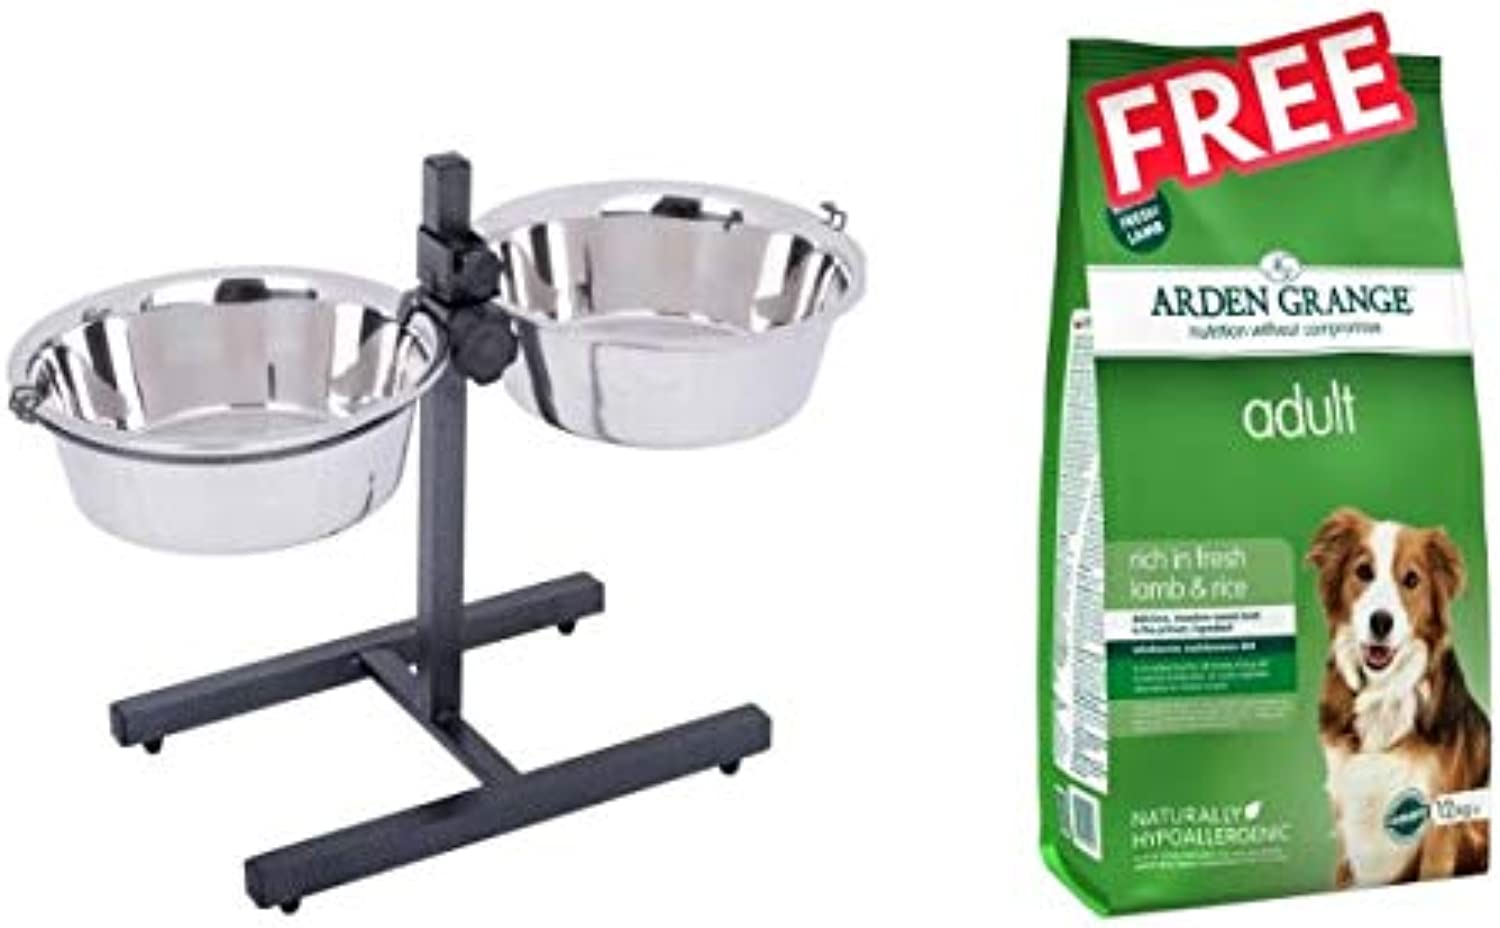 Dog Bowl Stand with 2 Stainless Steel Bowls Fully Adjustable Stand with Stainless Steel Bowls 2 x 1.6 litres Stable and Wobblefree Stand with FREE Arden Grange Adult  Lamb & Rice 2 x 12kg